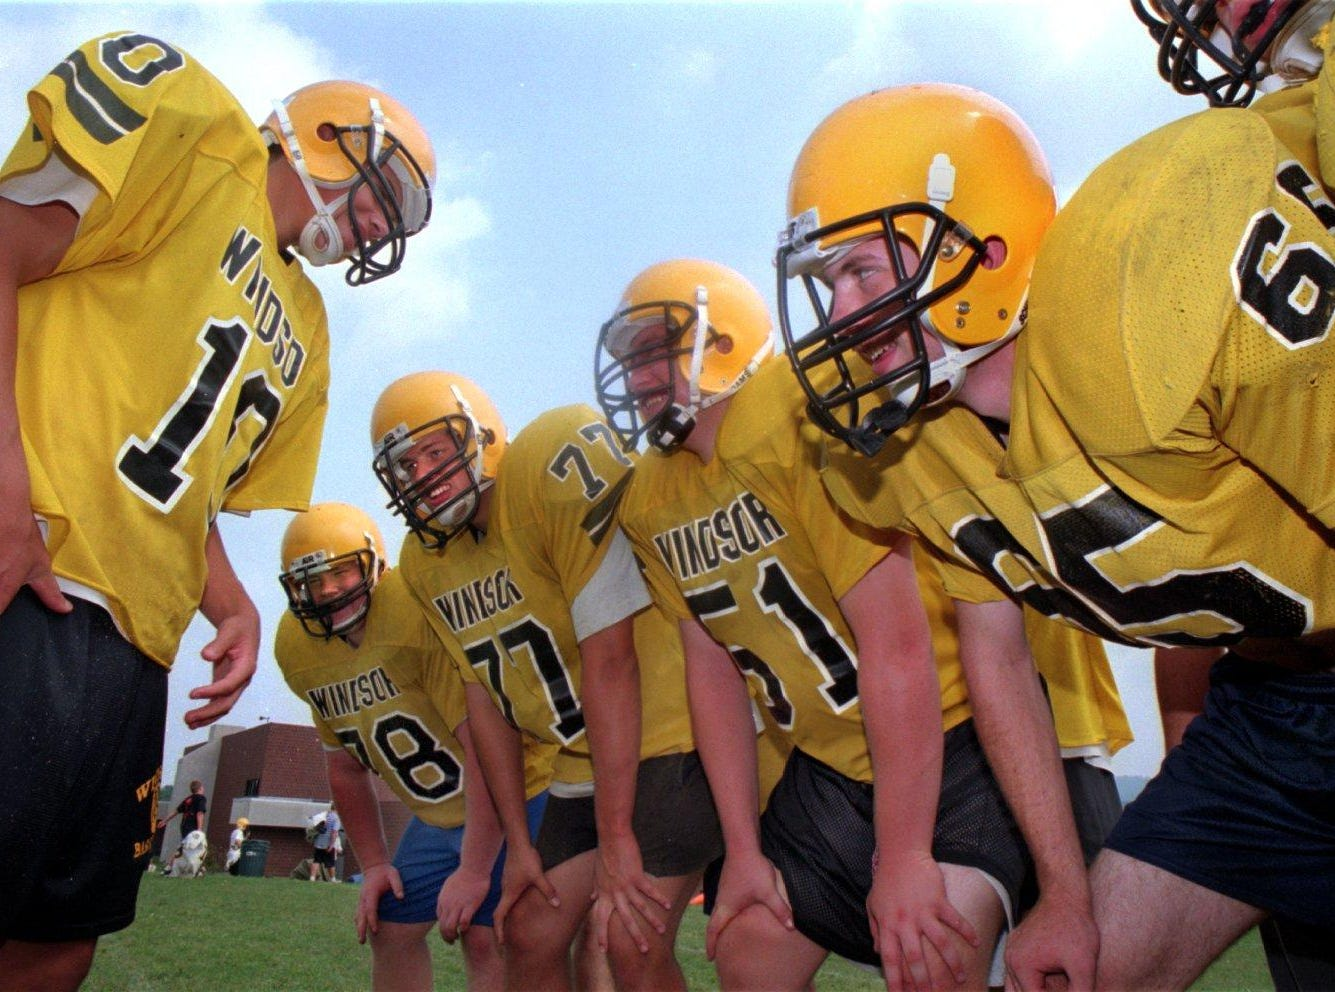 From 1996: Windsor High School Football players huddle up.